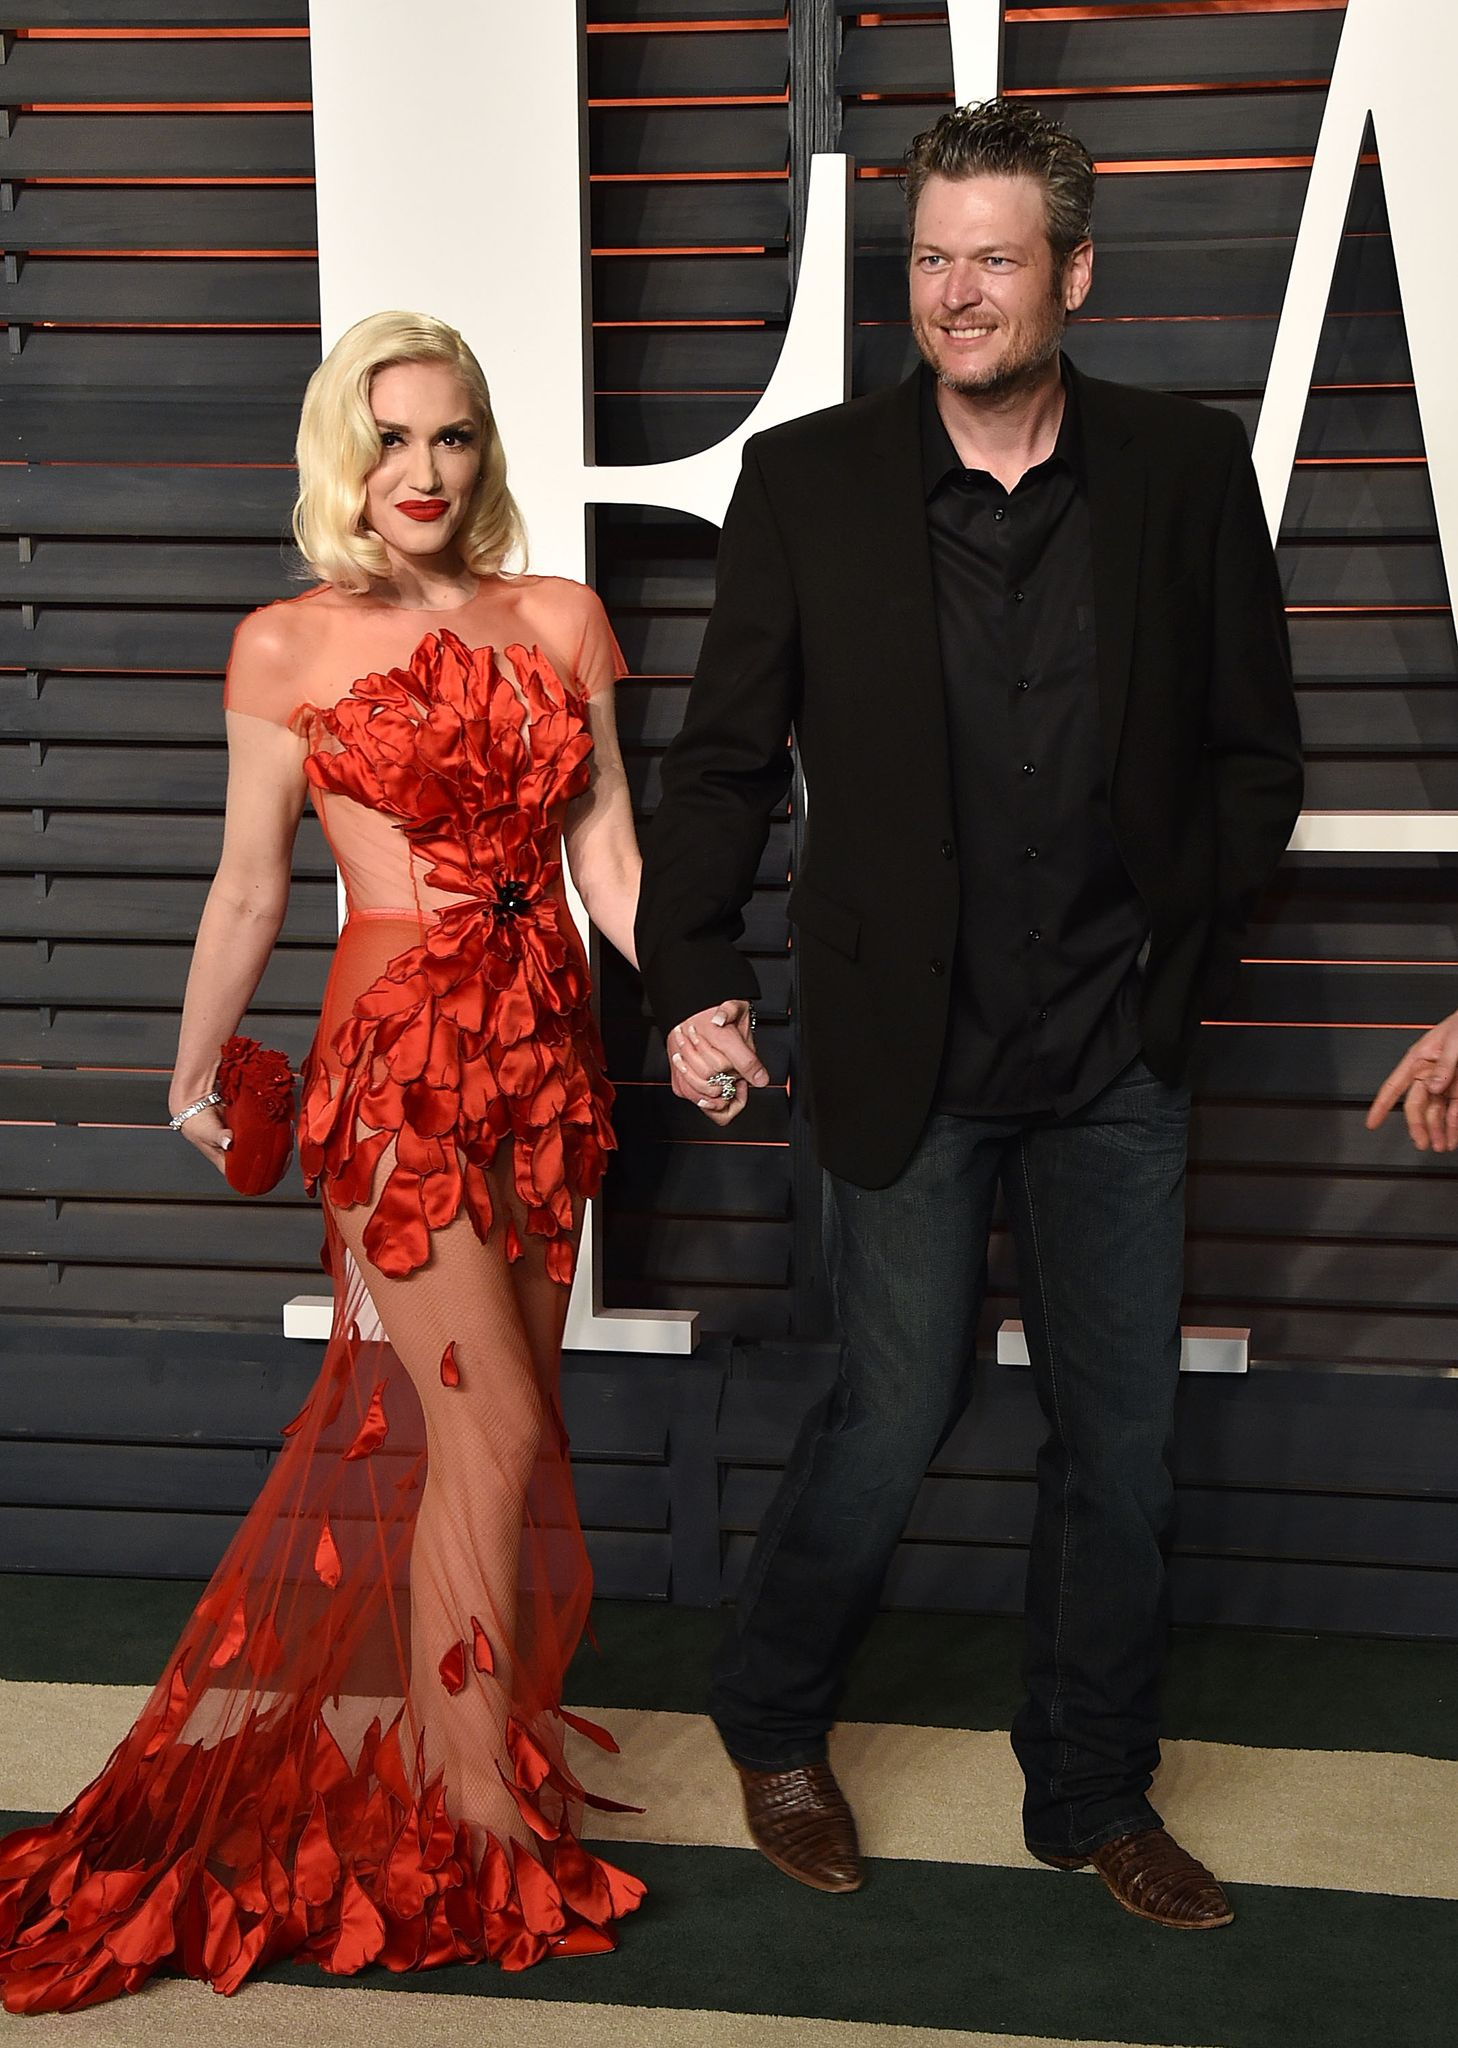 ecording artists Gwen Stefani (L) and Blake Shelton arrive at the 2016 Vanity Fair Oscar Party Hosted By Graydon Carter  | Getty Images